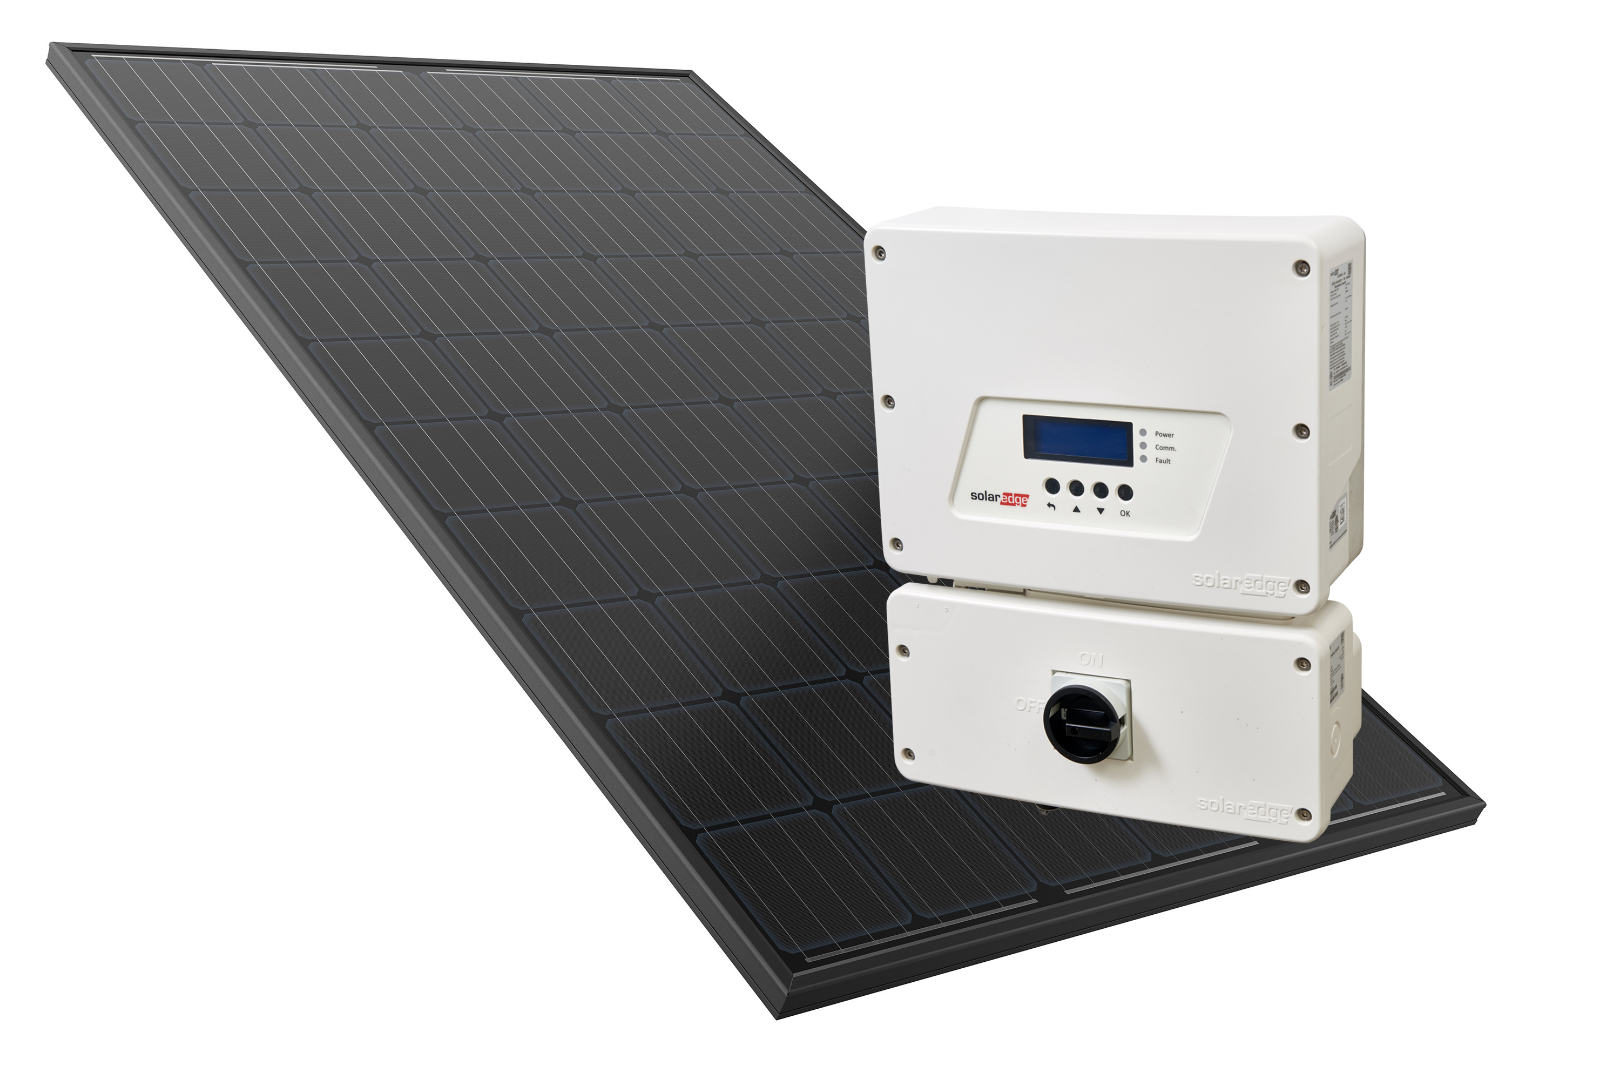 Our Panel Optimised PV systems use REC 280w twin peak panels and SolarEdge Inverters